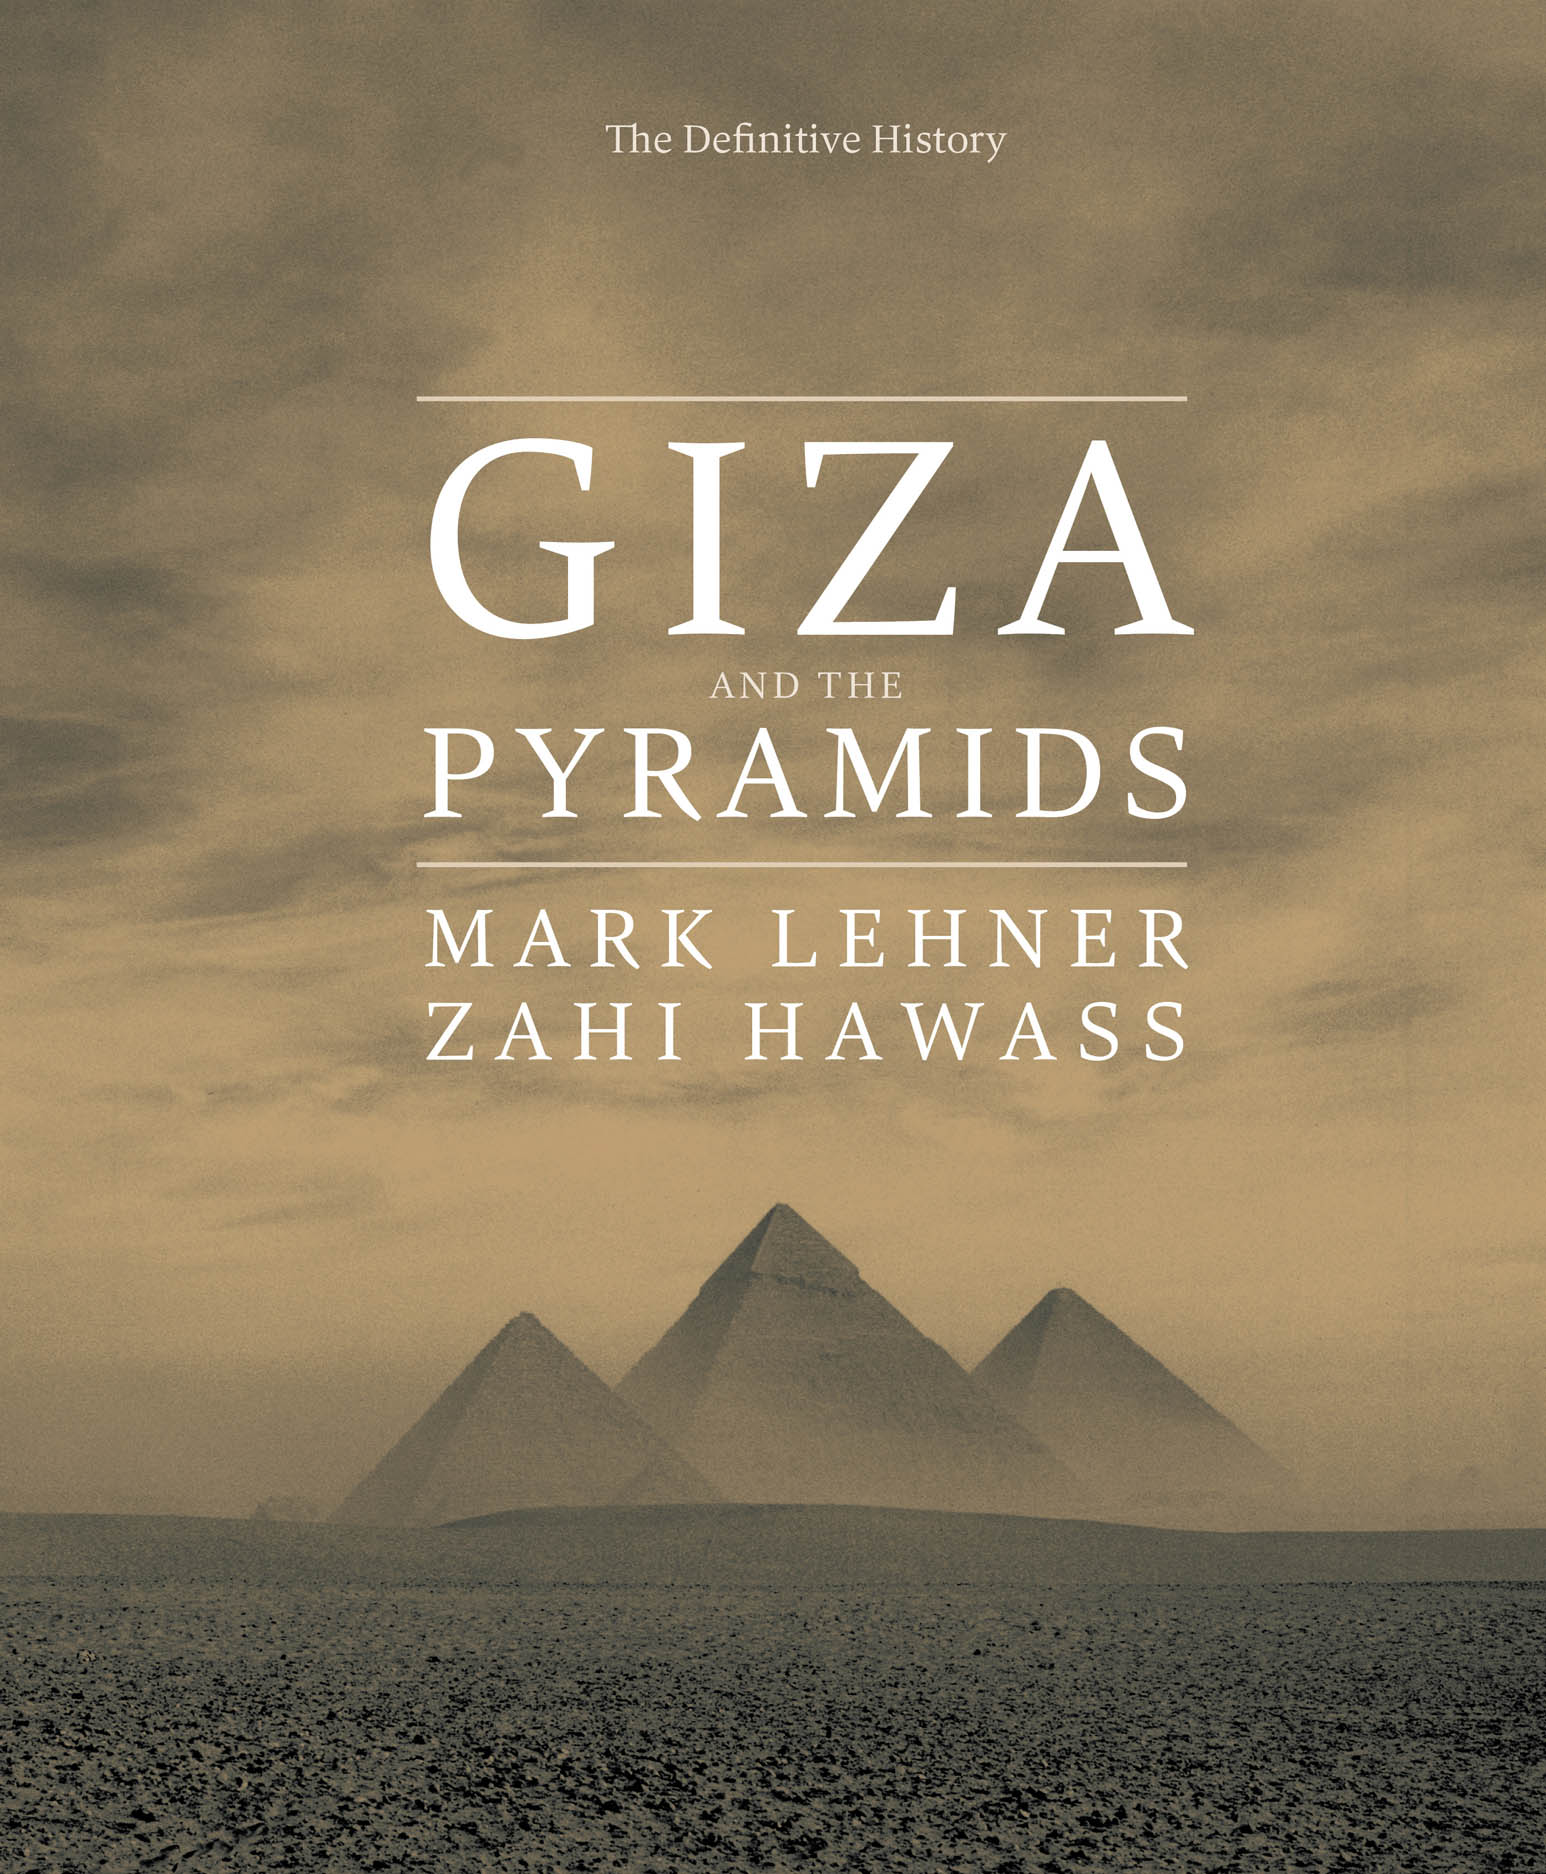 Giza and the Pyramids: The Definitive History